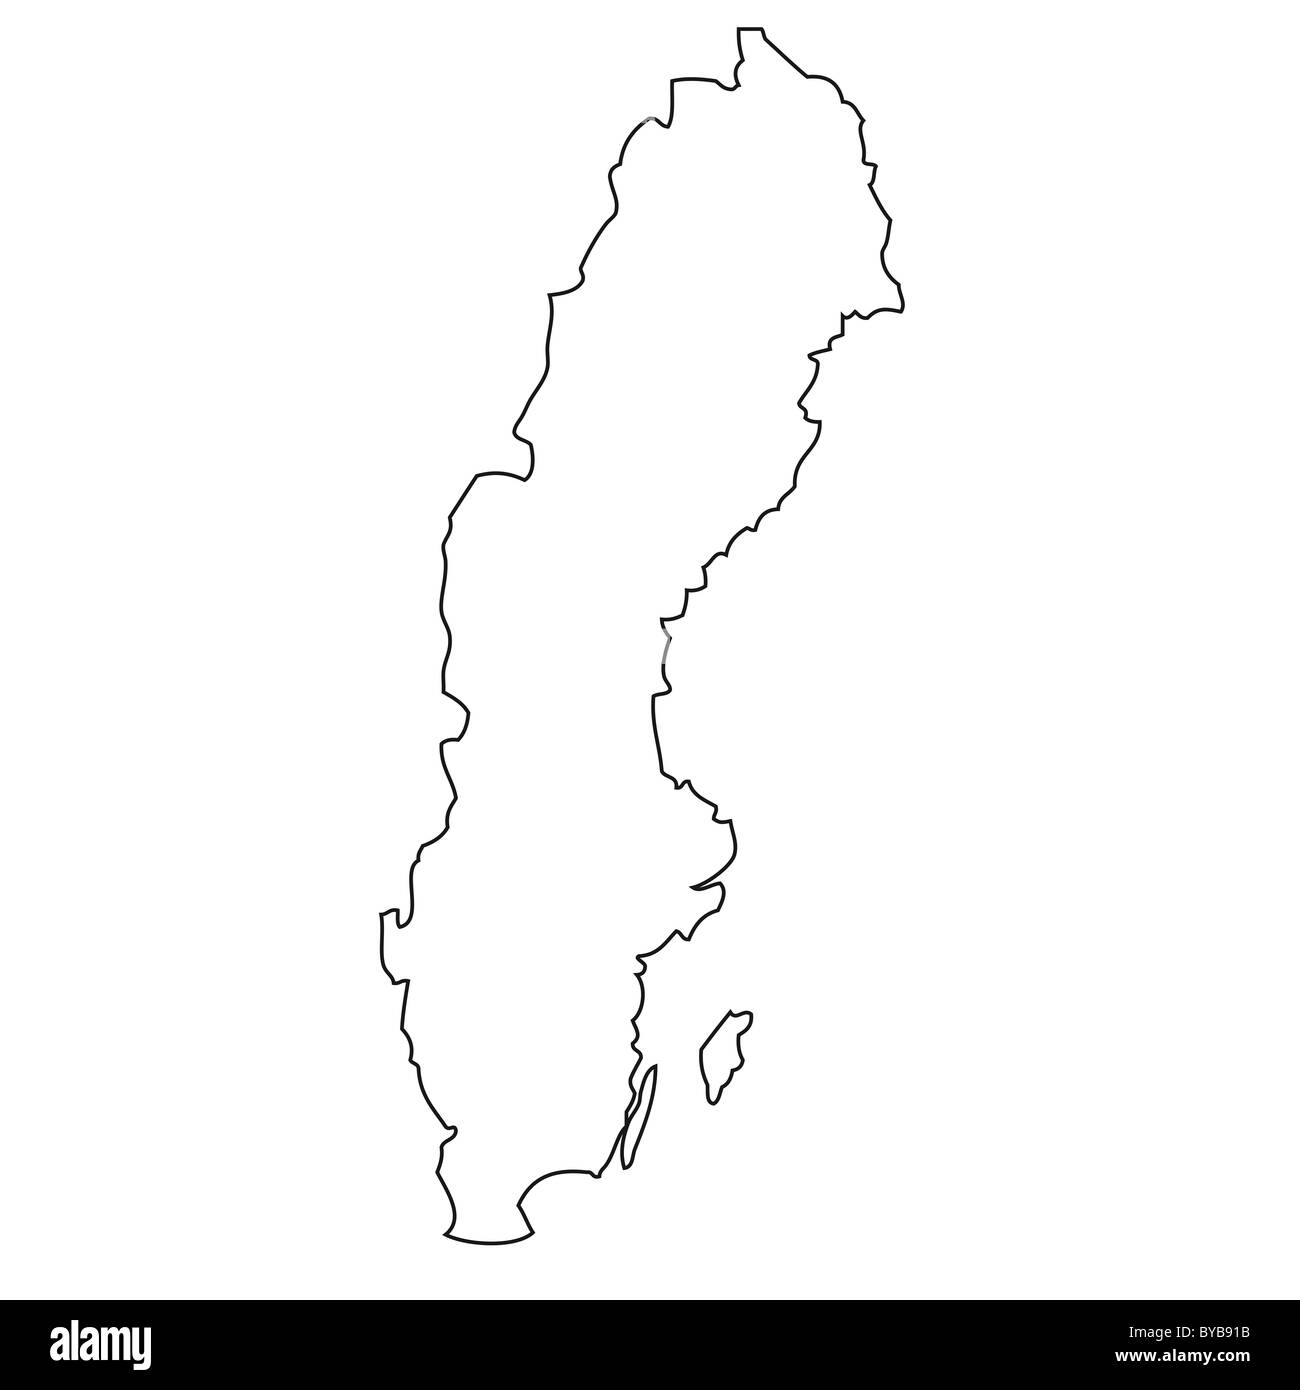 Outline Map Of Sweden Stock Photo Royalty Free Image - Sweden blank map